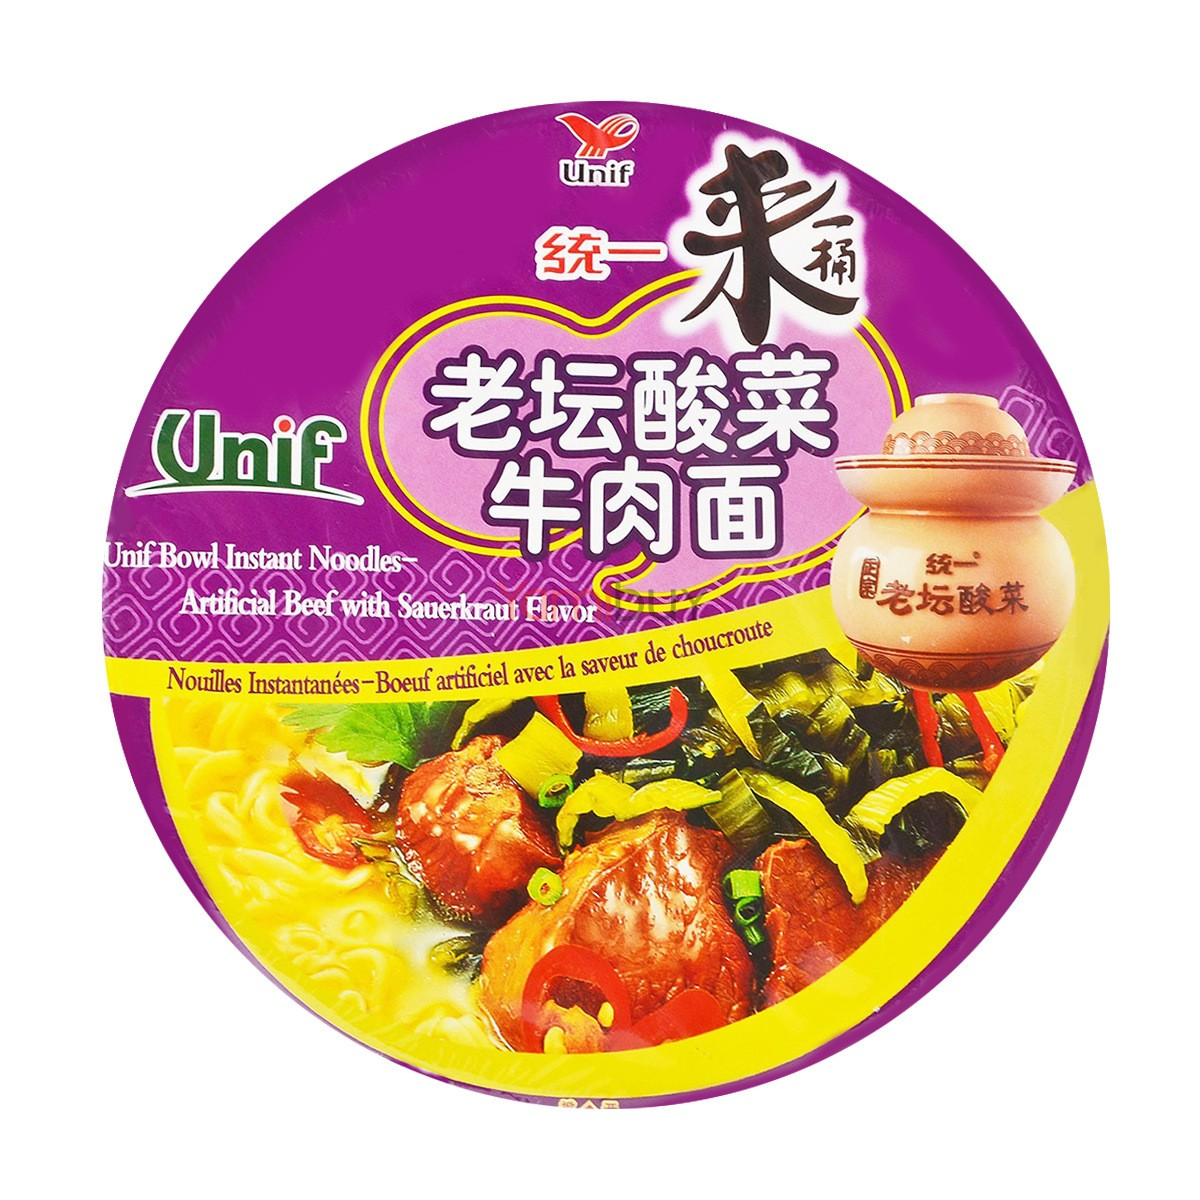 UNIF Bowl Instant Noodles -Chinese Sauerkraut Flavor 125g (Package Date Format DDMMYYYY)